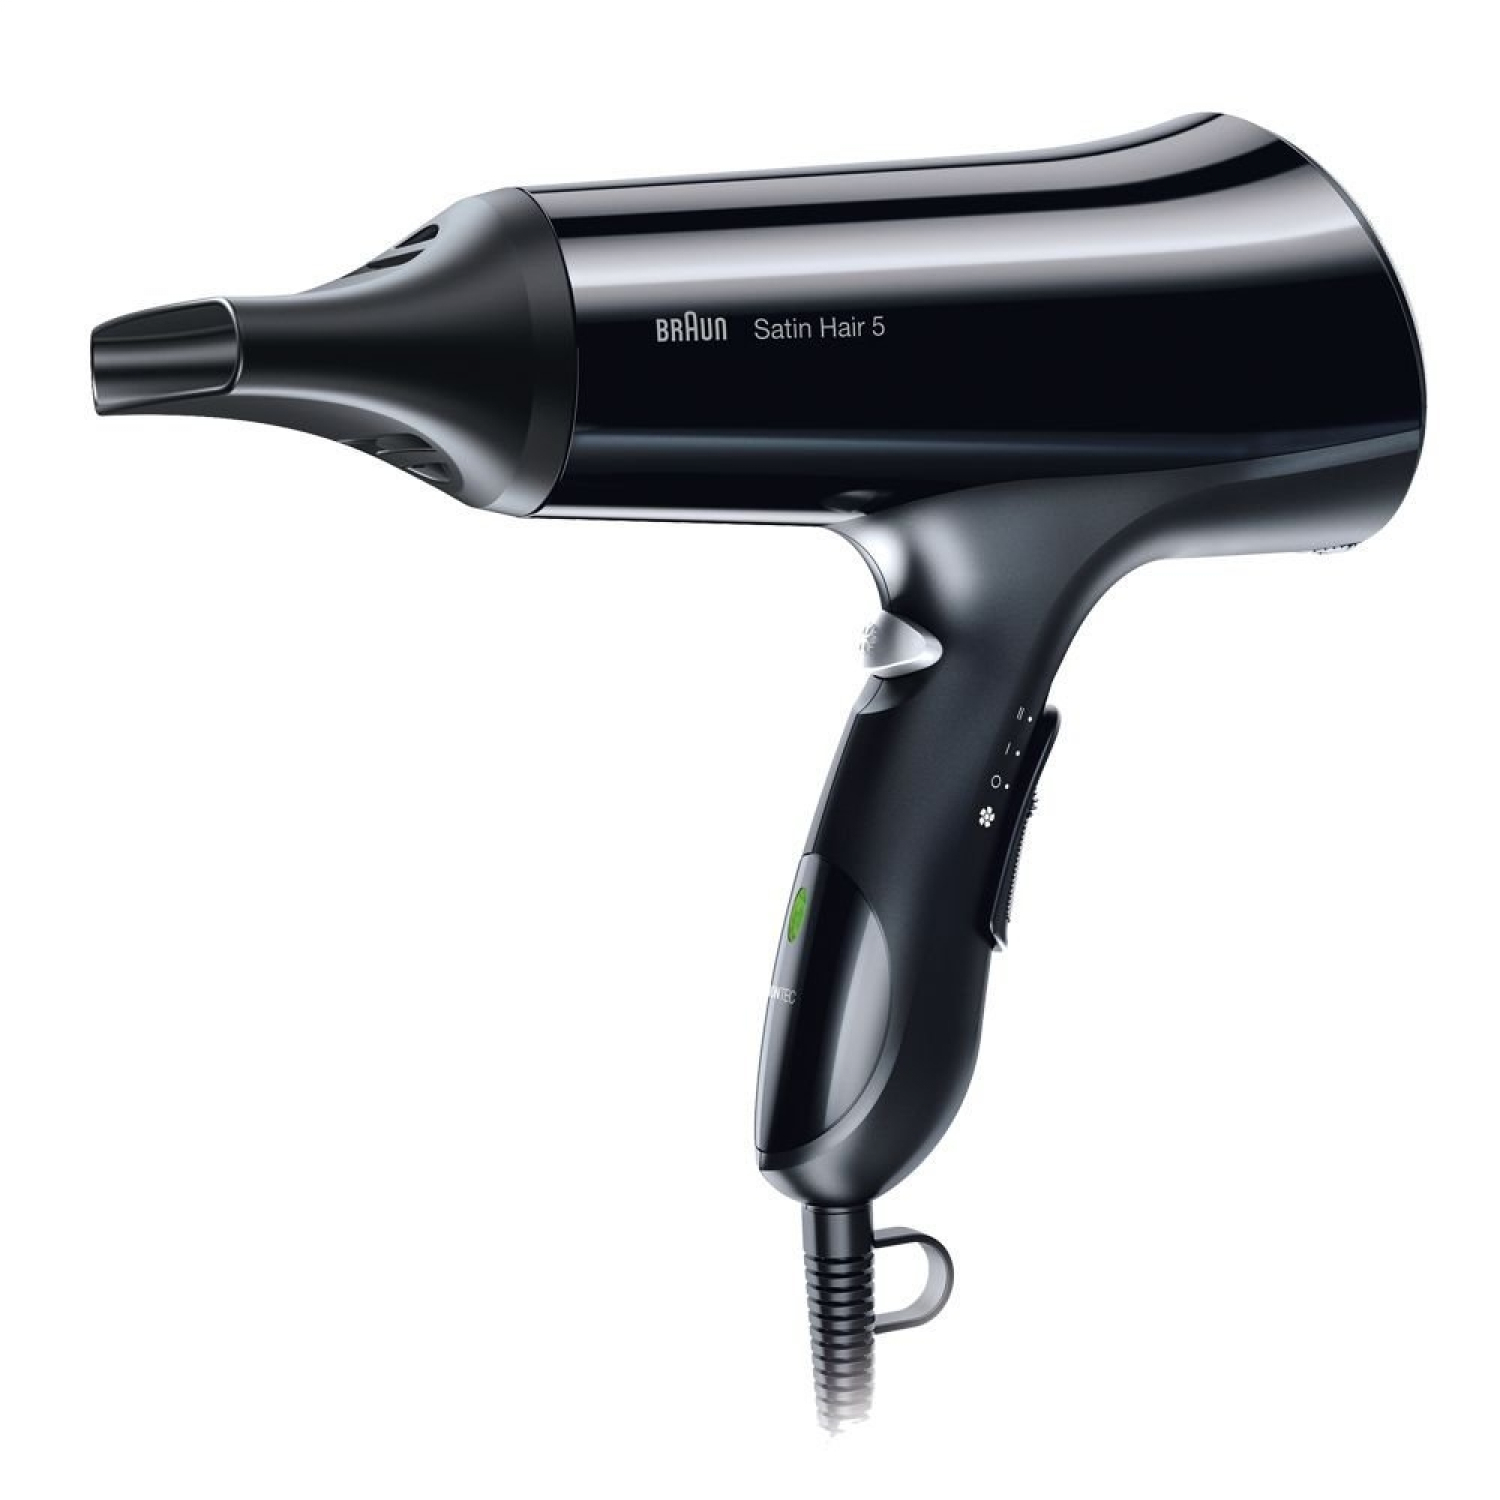 Braun Satin Hair 5 HD 550 Haartrockner